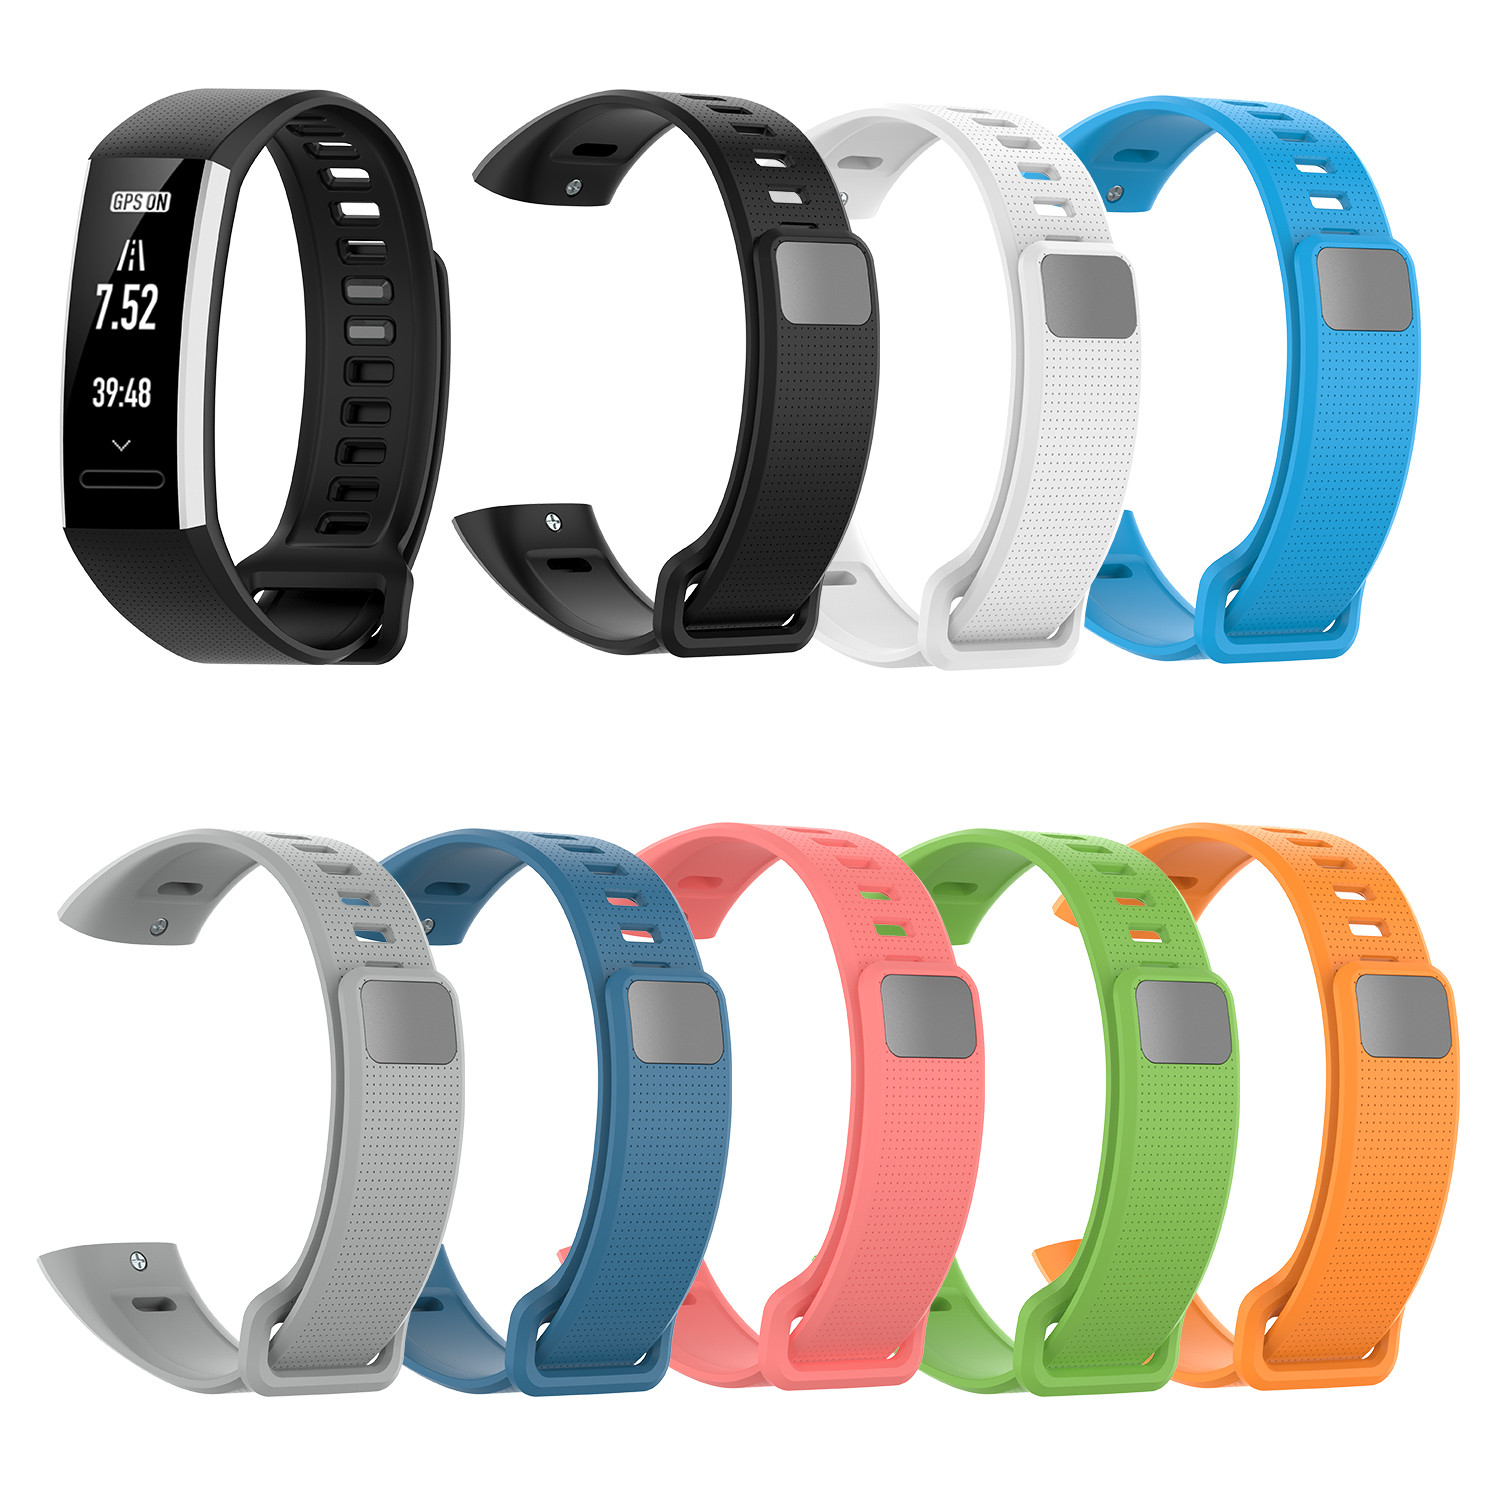 Silicone Sport Band Strap Replacement Wrist Band For Huawei Band 2/Band 2 Pro Smart Watch Wristband Smart Accessories #H15